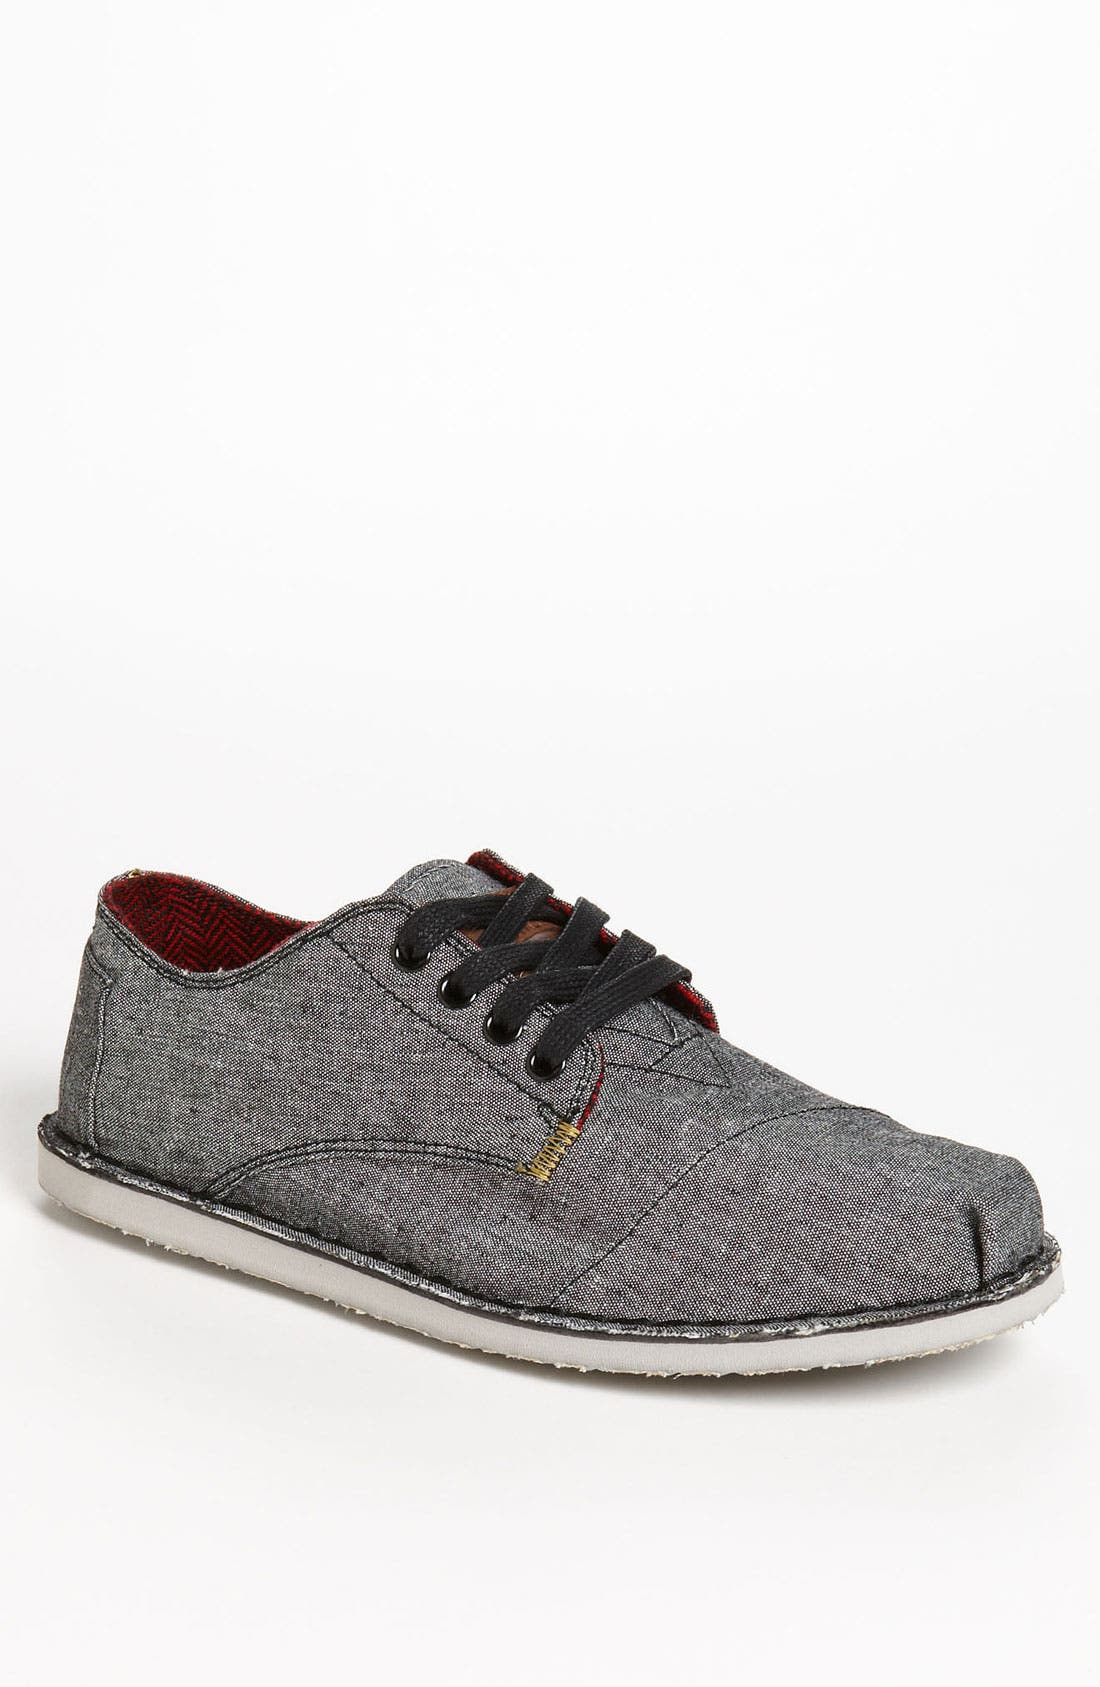 Alternate Image 1 Selected - TOMS 'Desert' Chambray Oxford (Men)